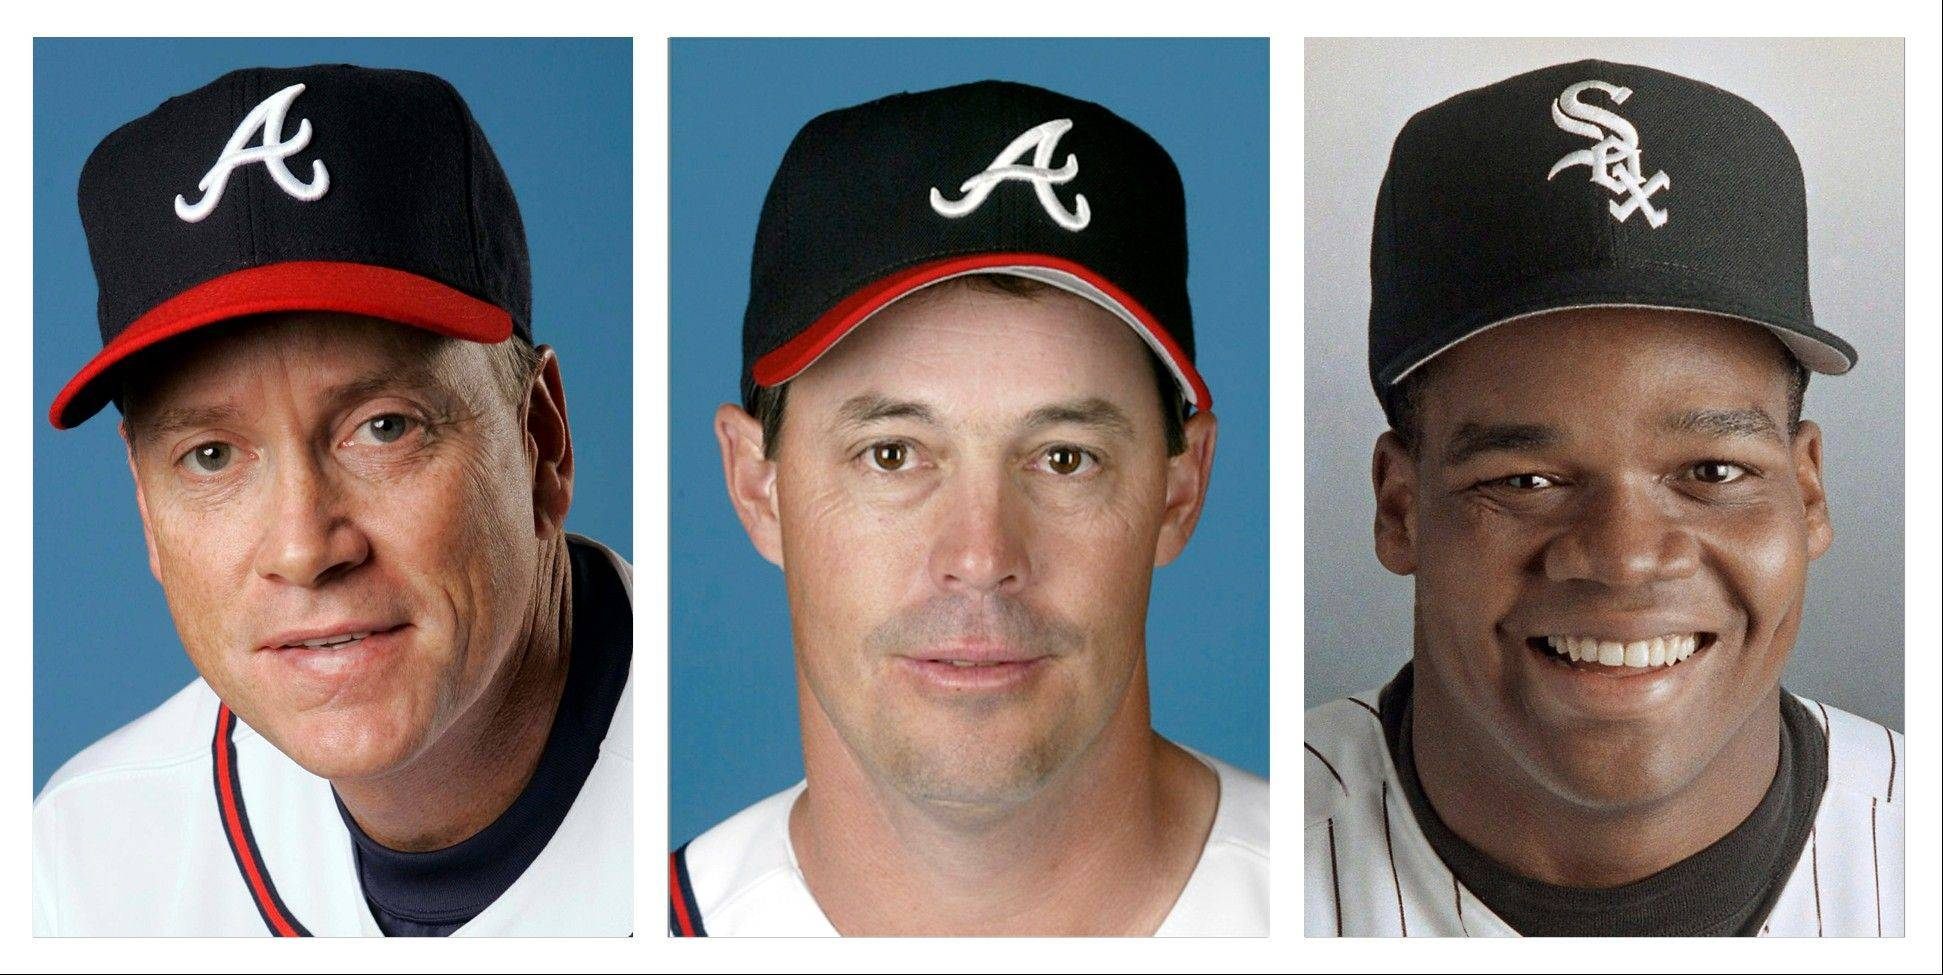 Tom Glavine, Greg Maddux and Frank Thomas appeared on the Baseball Hall of Fame ballot for the first time this winter. They received votes from all four of Daily Herald's electors.